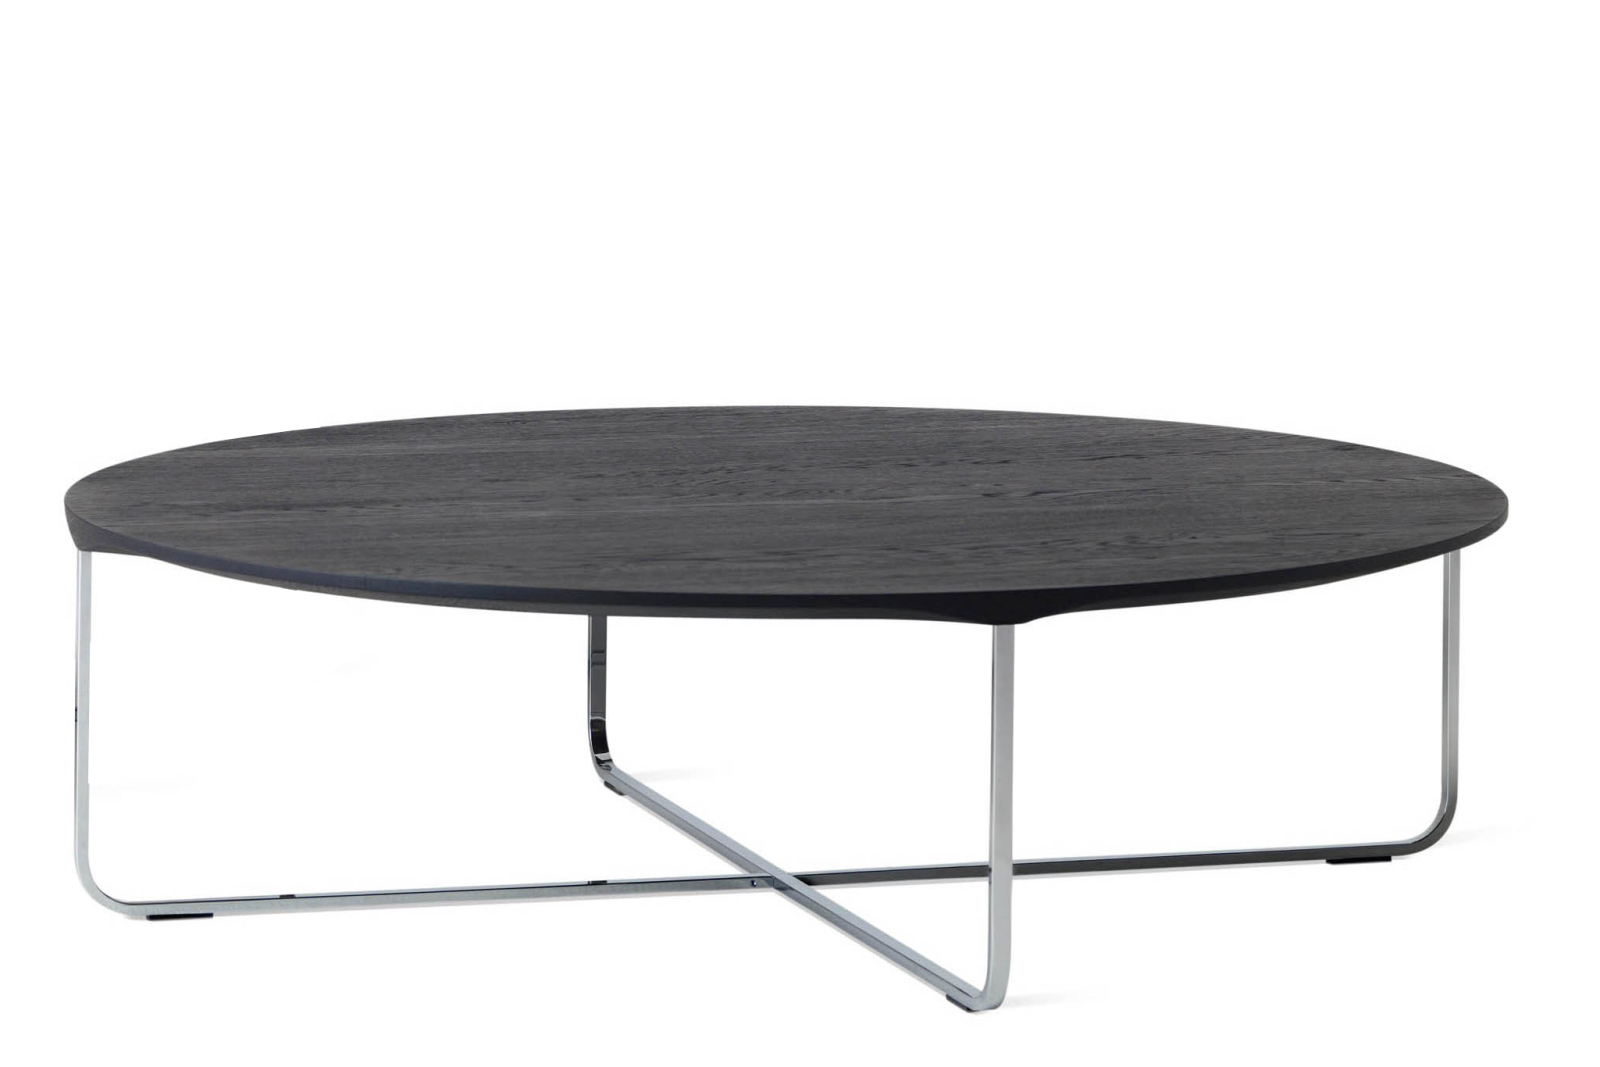 Flint Round Coffee Table Carbon Ash, Large